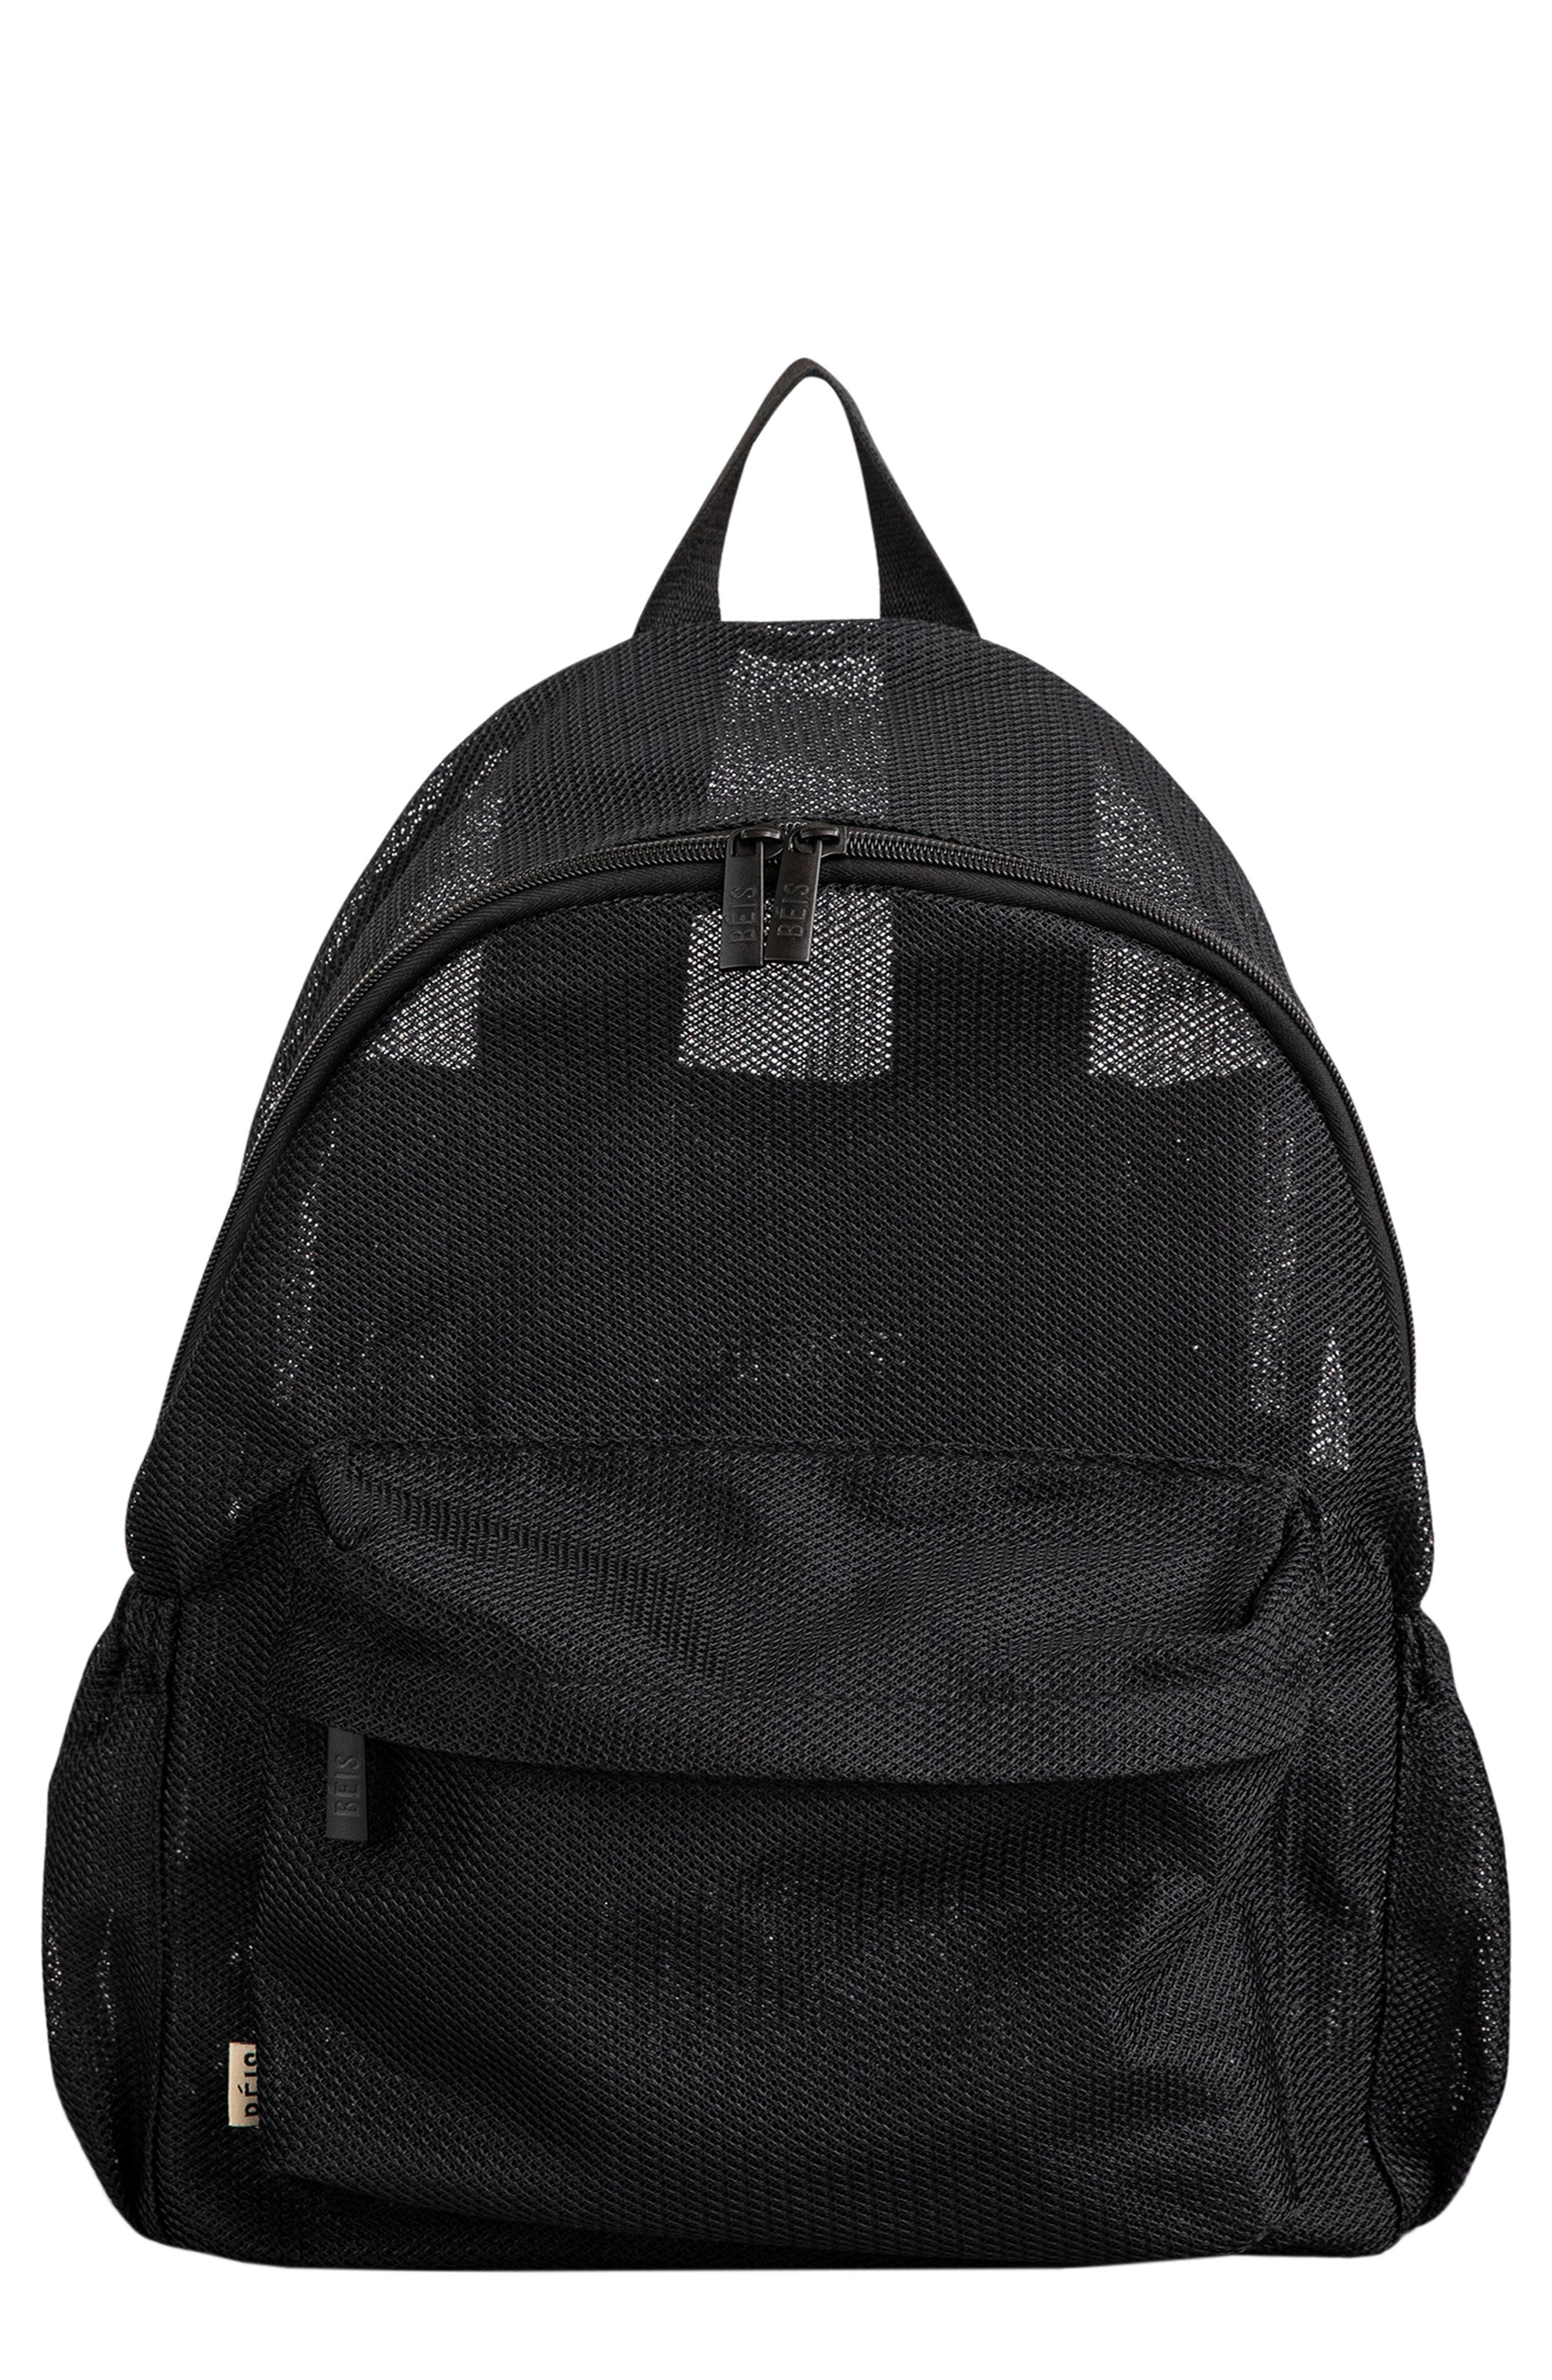 The Packable Mesh Backpack